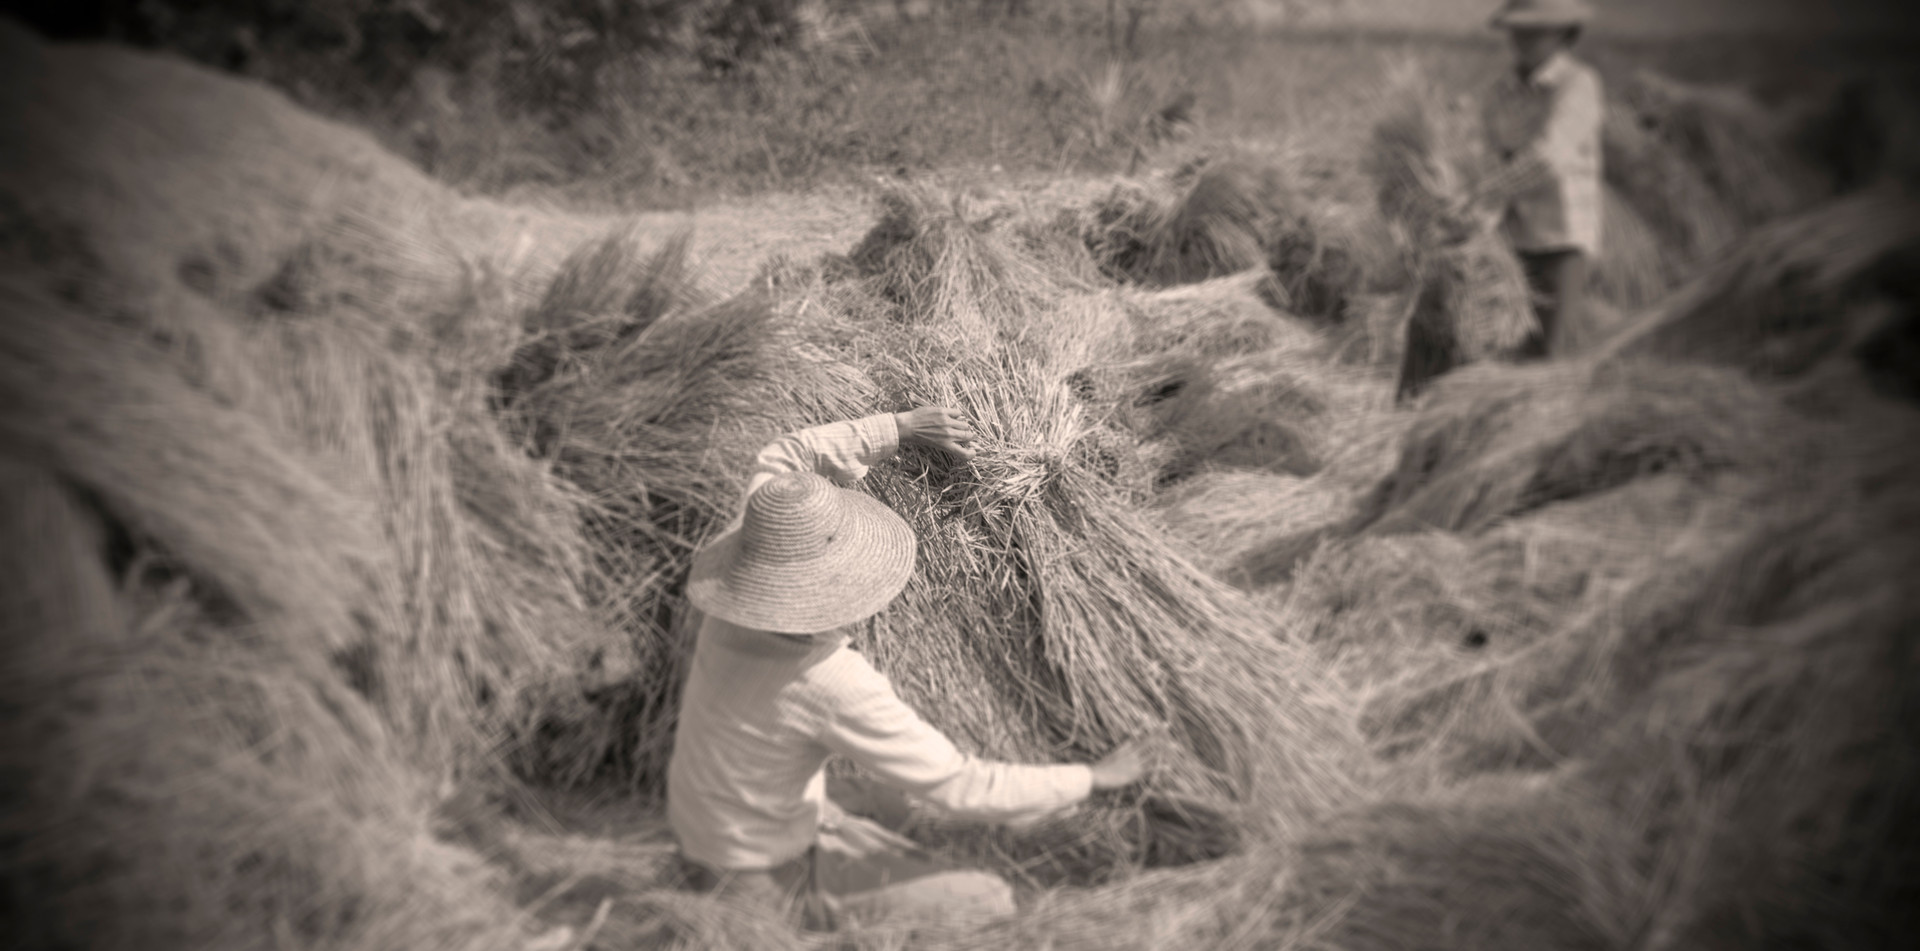 Farmers harvesting wheat near Katha, where George Orwell's 'Burmese Days' was set